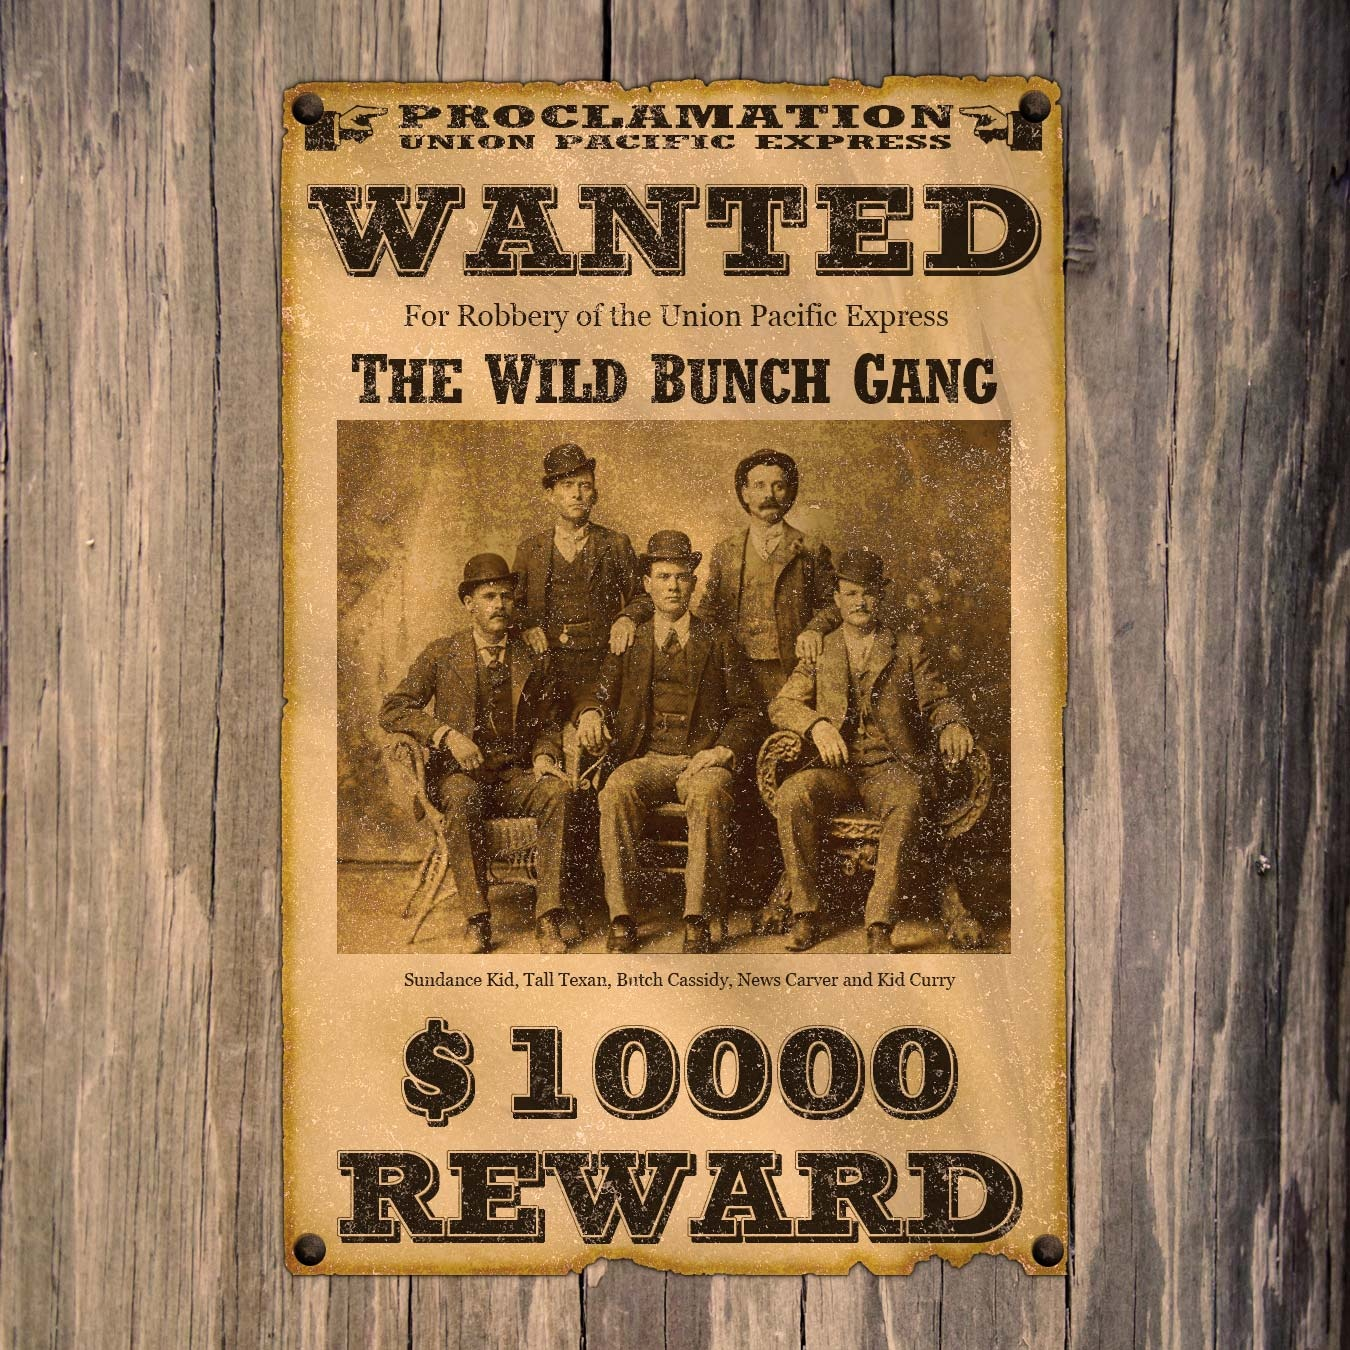 Create An Old West Wanted Poster In Adobe Photoshop - Free Printable Wanted Poster Old West